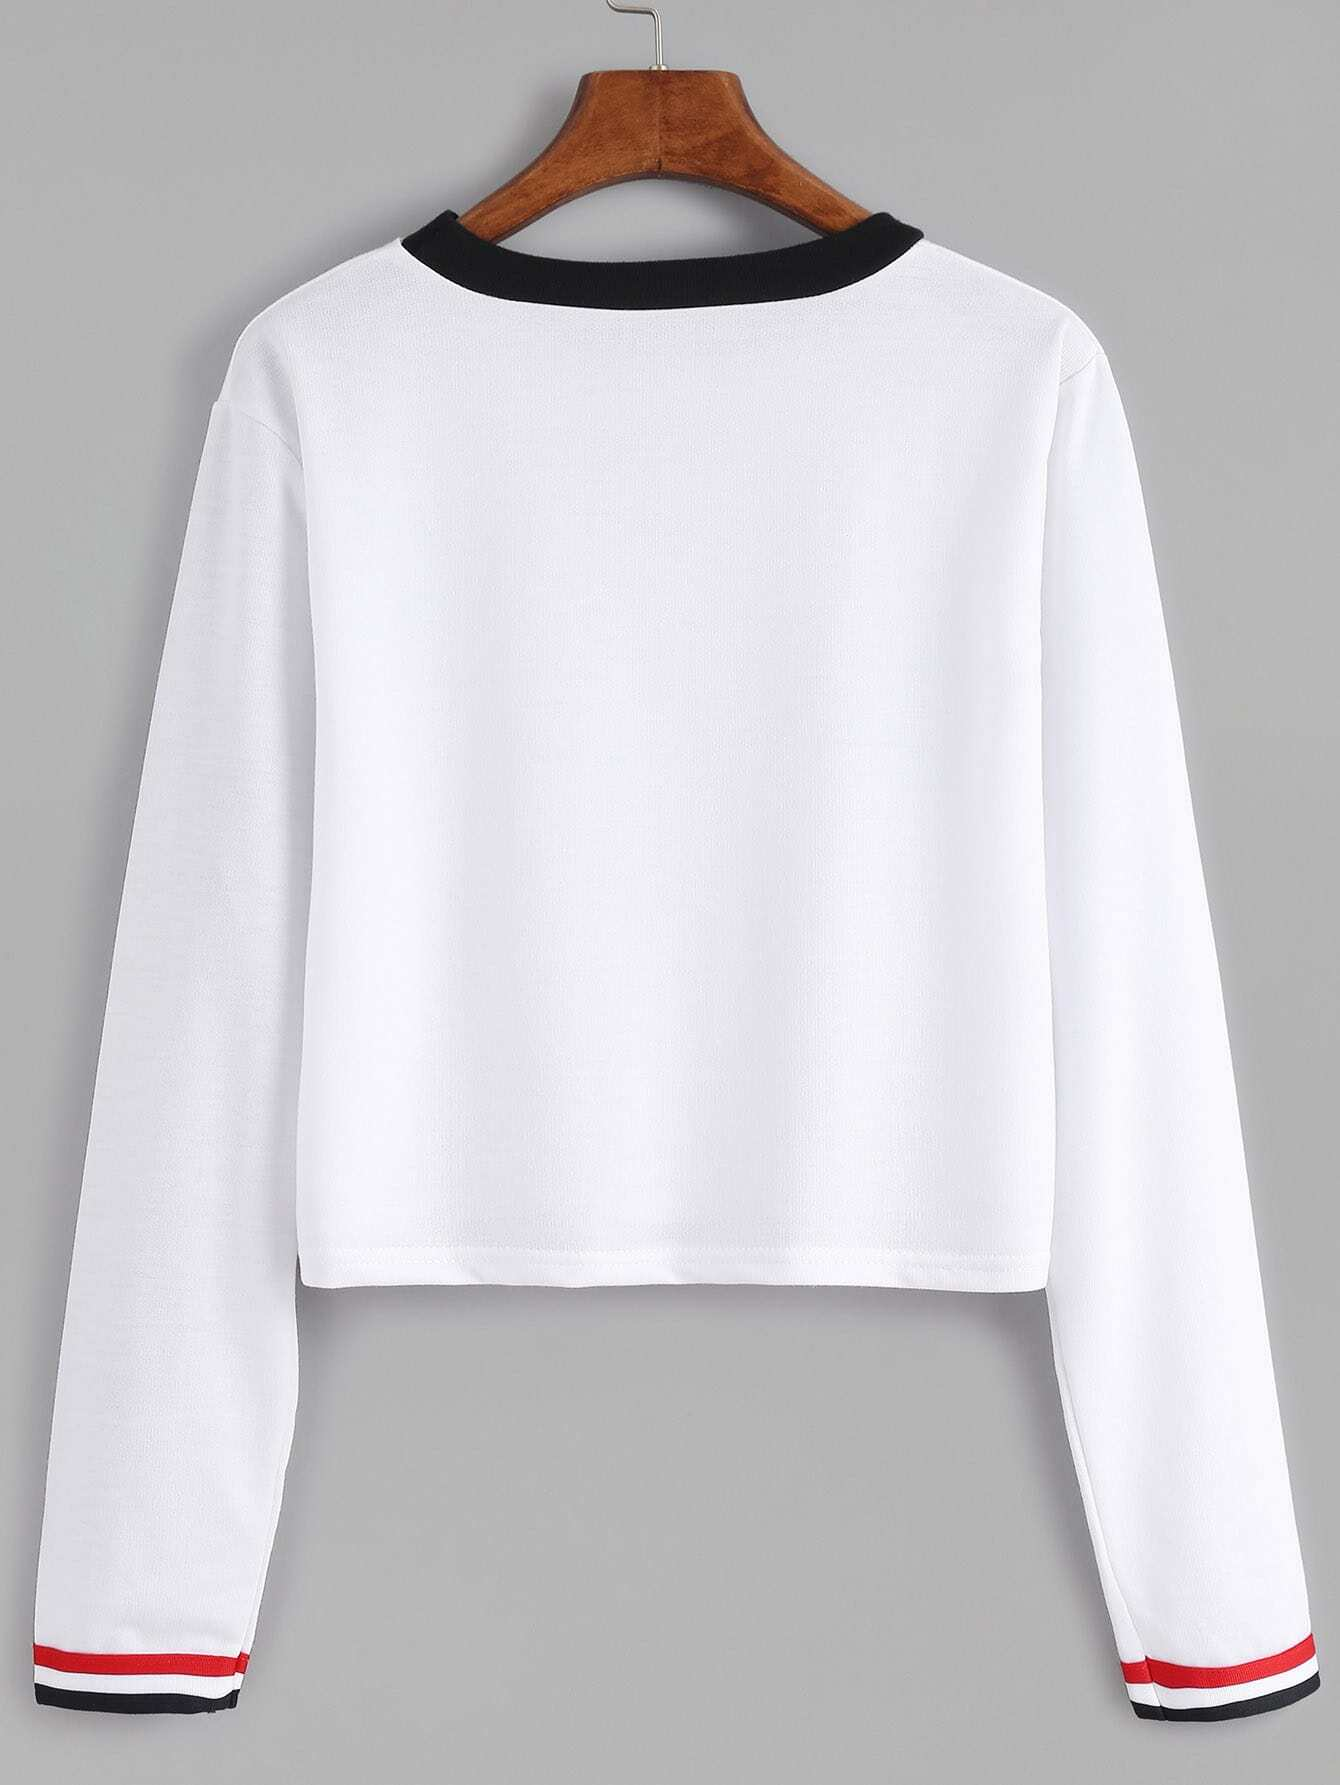 White Contrast Striped Long Sleeve T-shirt